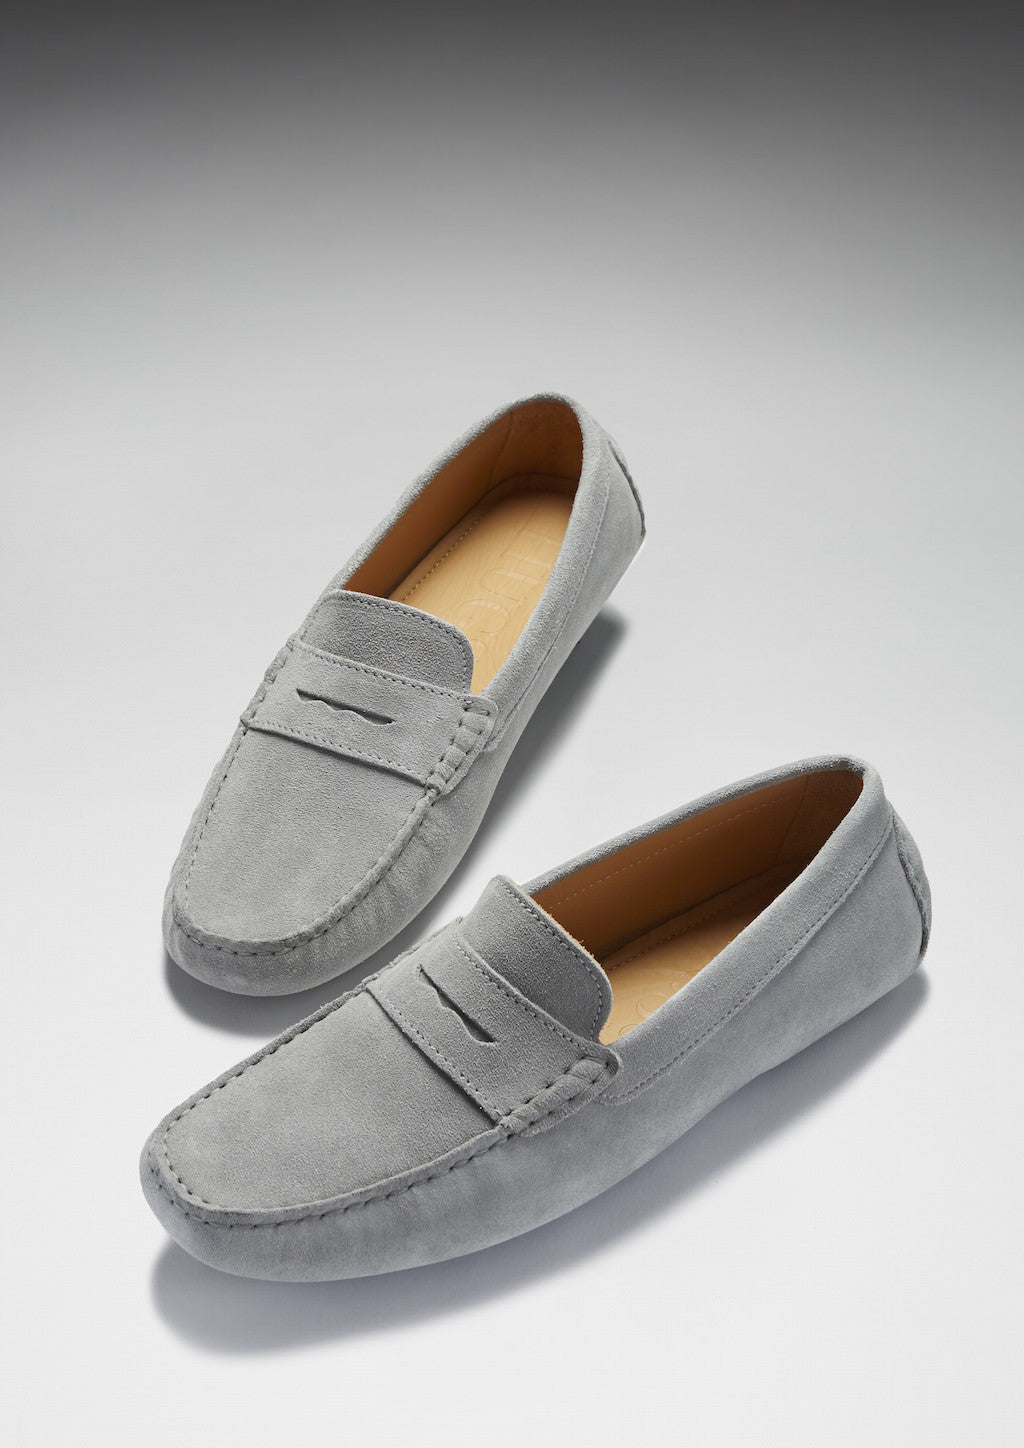 Find grey suede loafers mens at ShopStyle. Shop the latest collection of grey suede loafers mens from the most popular stores - all in one place.